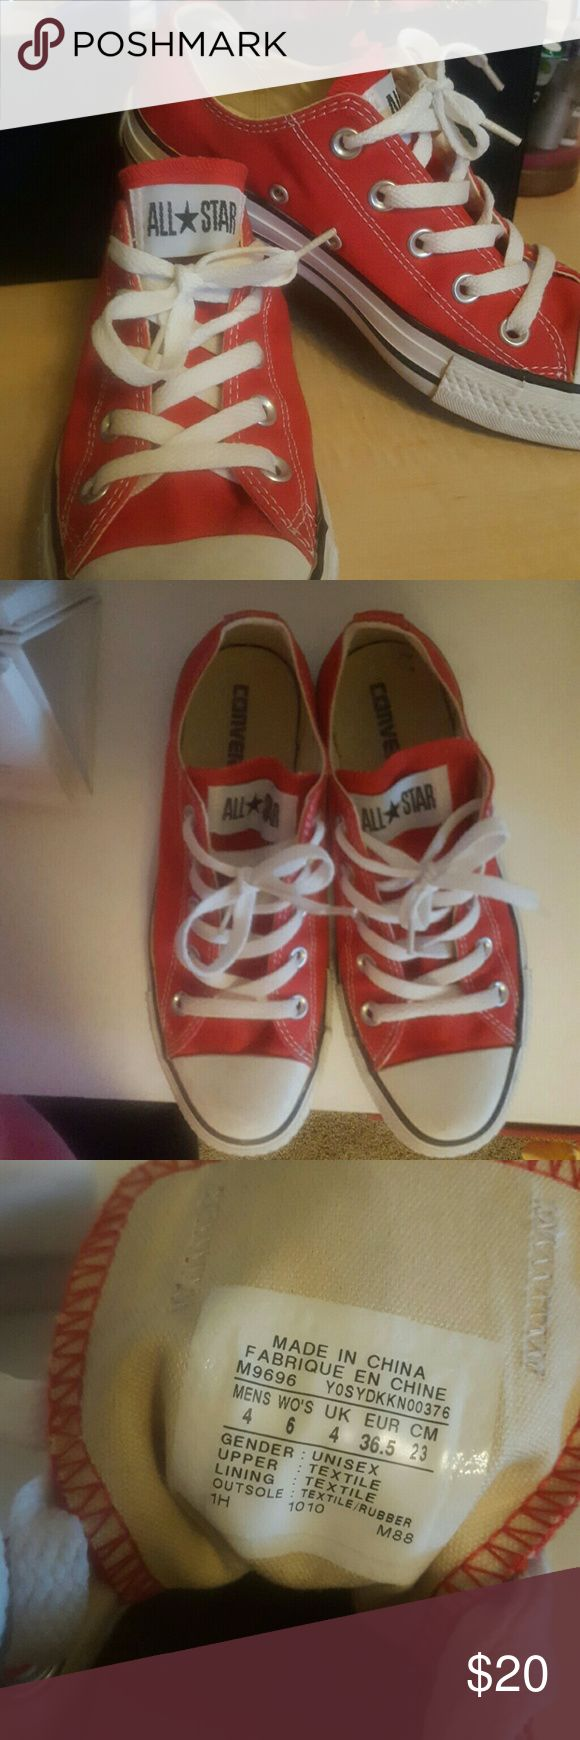 Converse All Star Low Tops Size 4 (fits like a 6.5) red Converse shoes worn maybe 3 times. Converse Shoes Sneakers